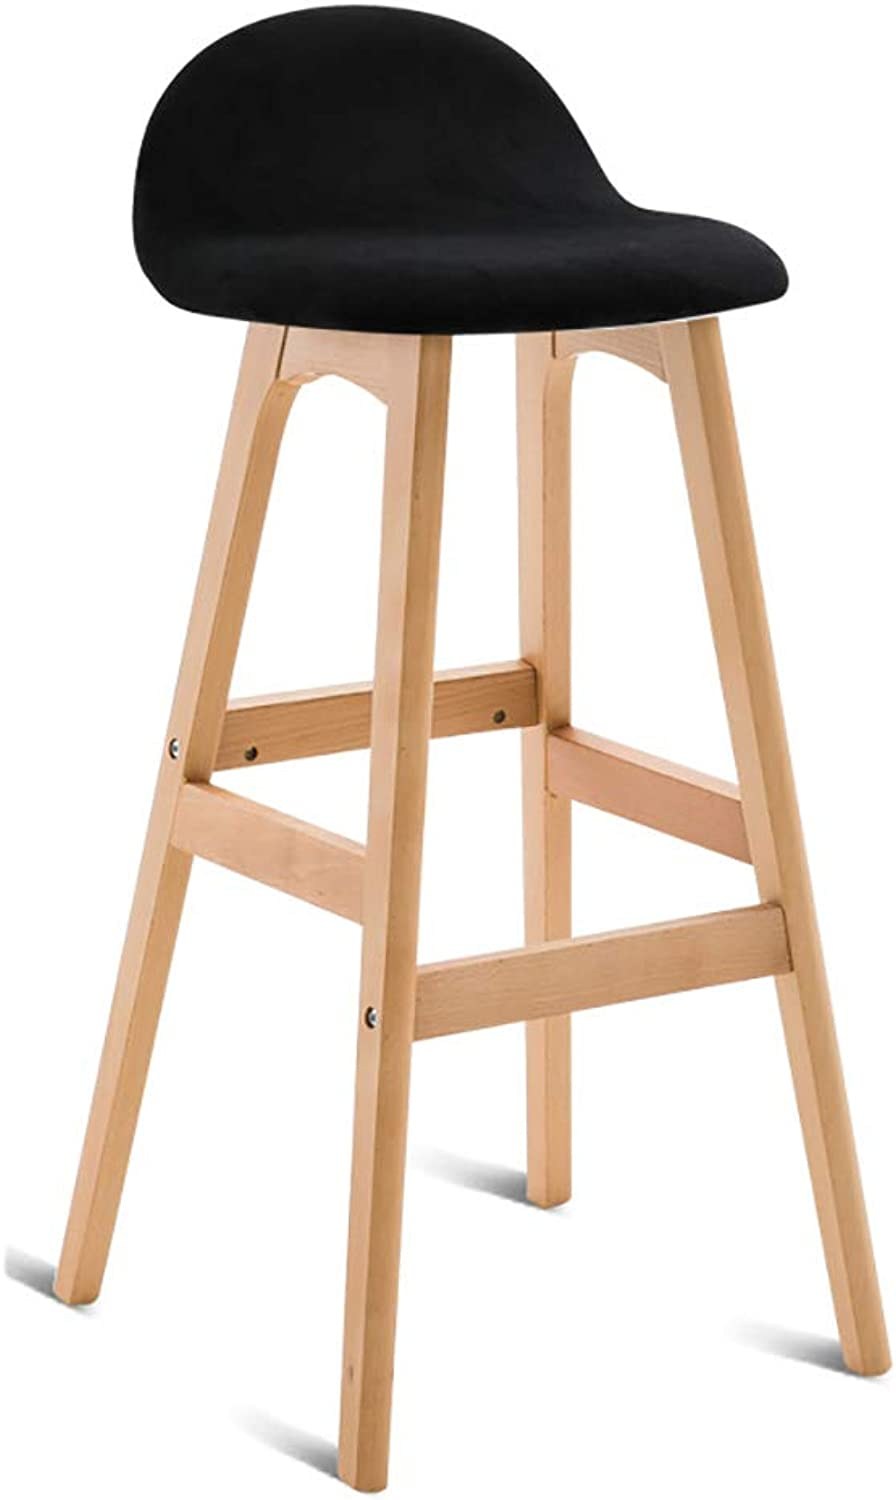 Solid Wood Bar Chair Modern Simplicity Bar Stools High Stool Creative Chair Home (color   C)